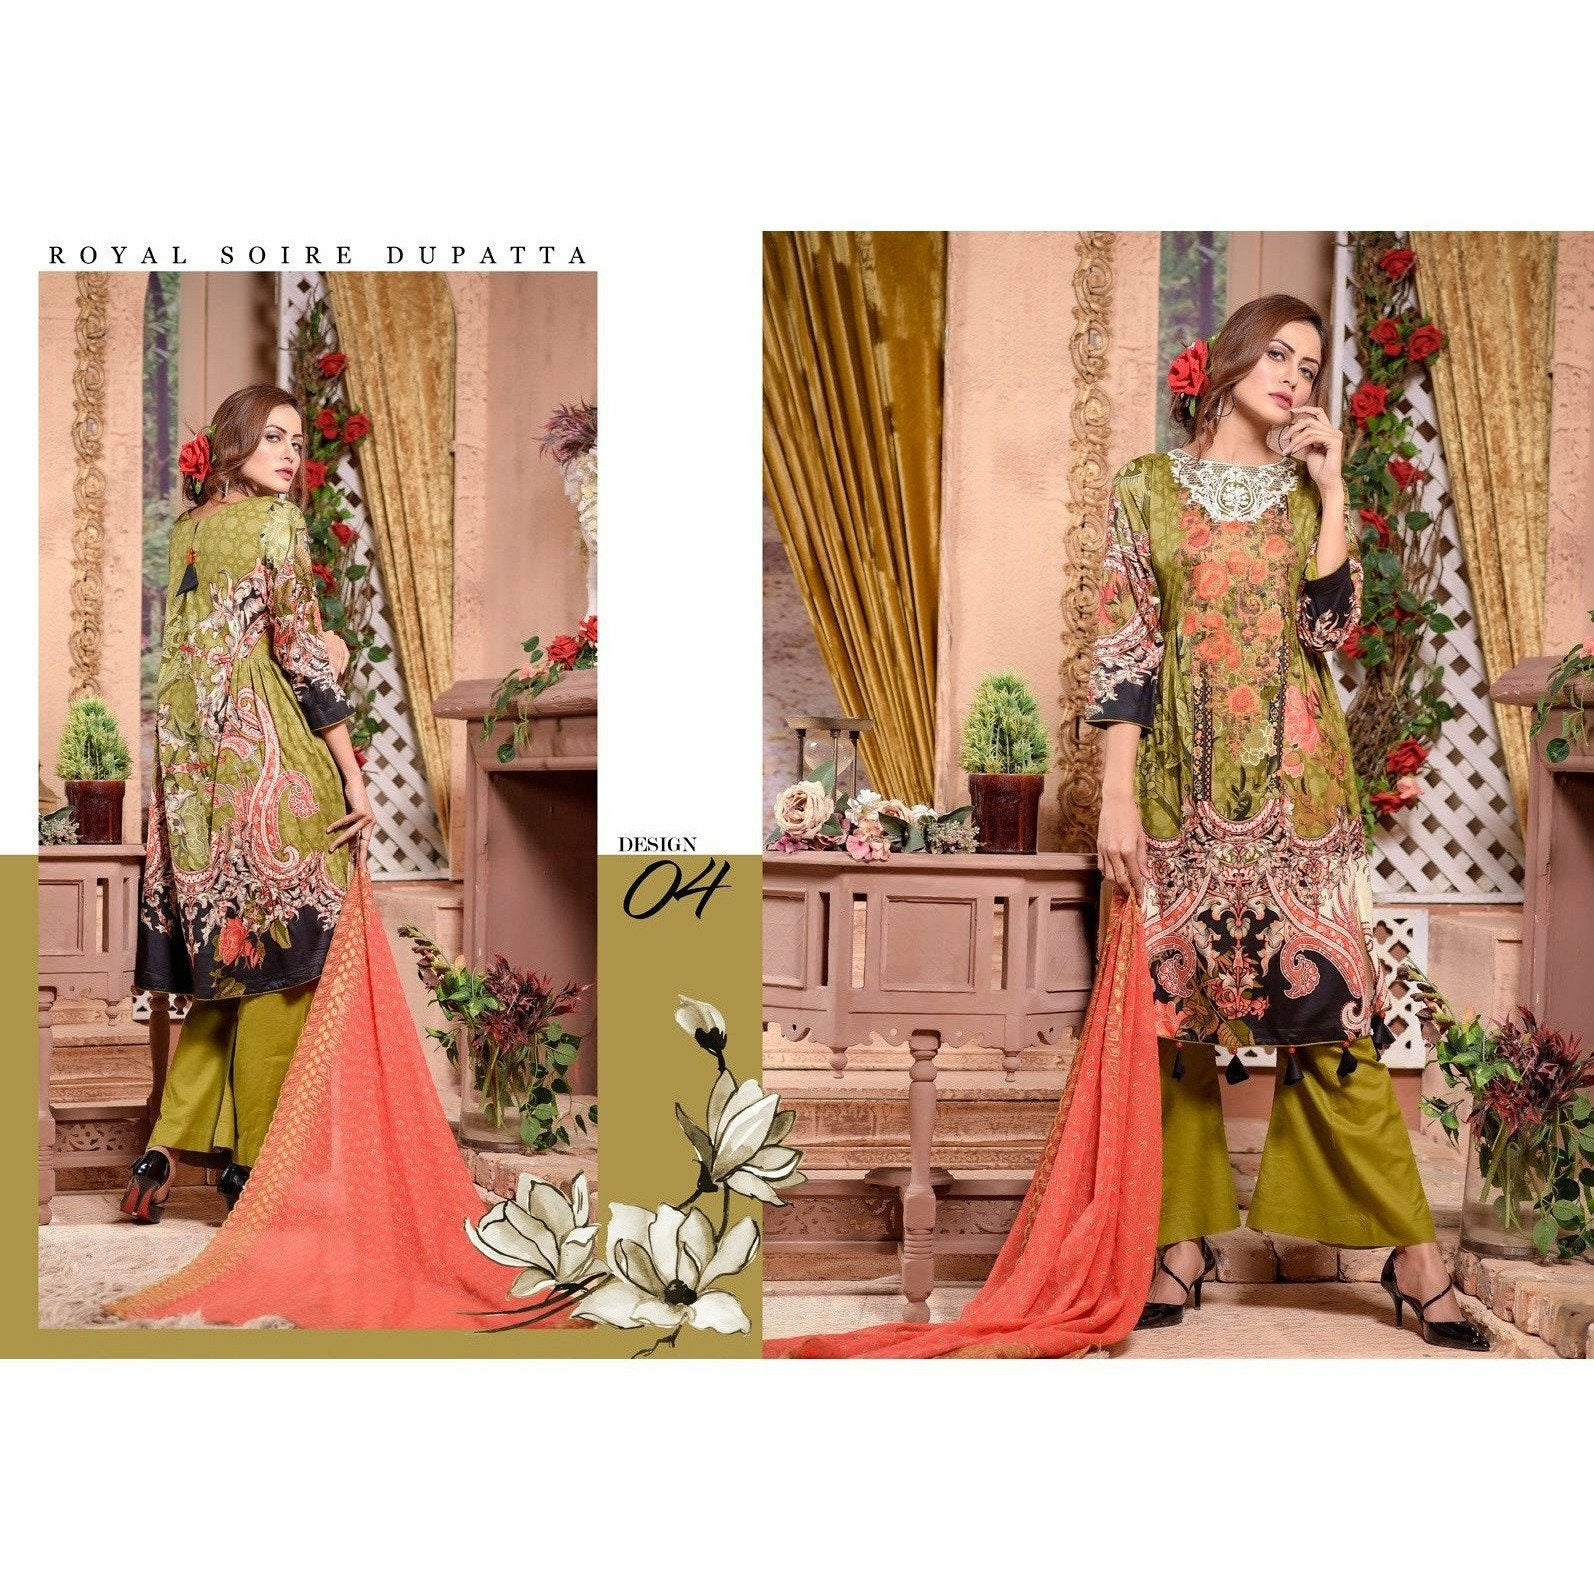 Keysaria Embroidered Vol 2 - Design 04 - House of Faiza